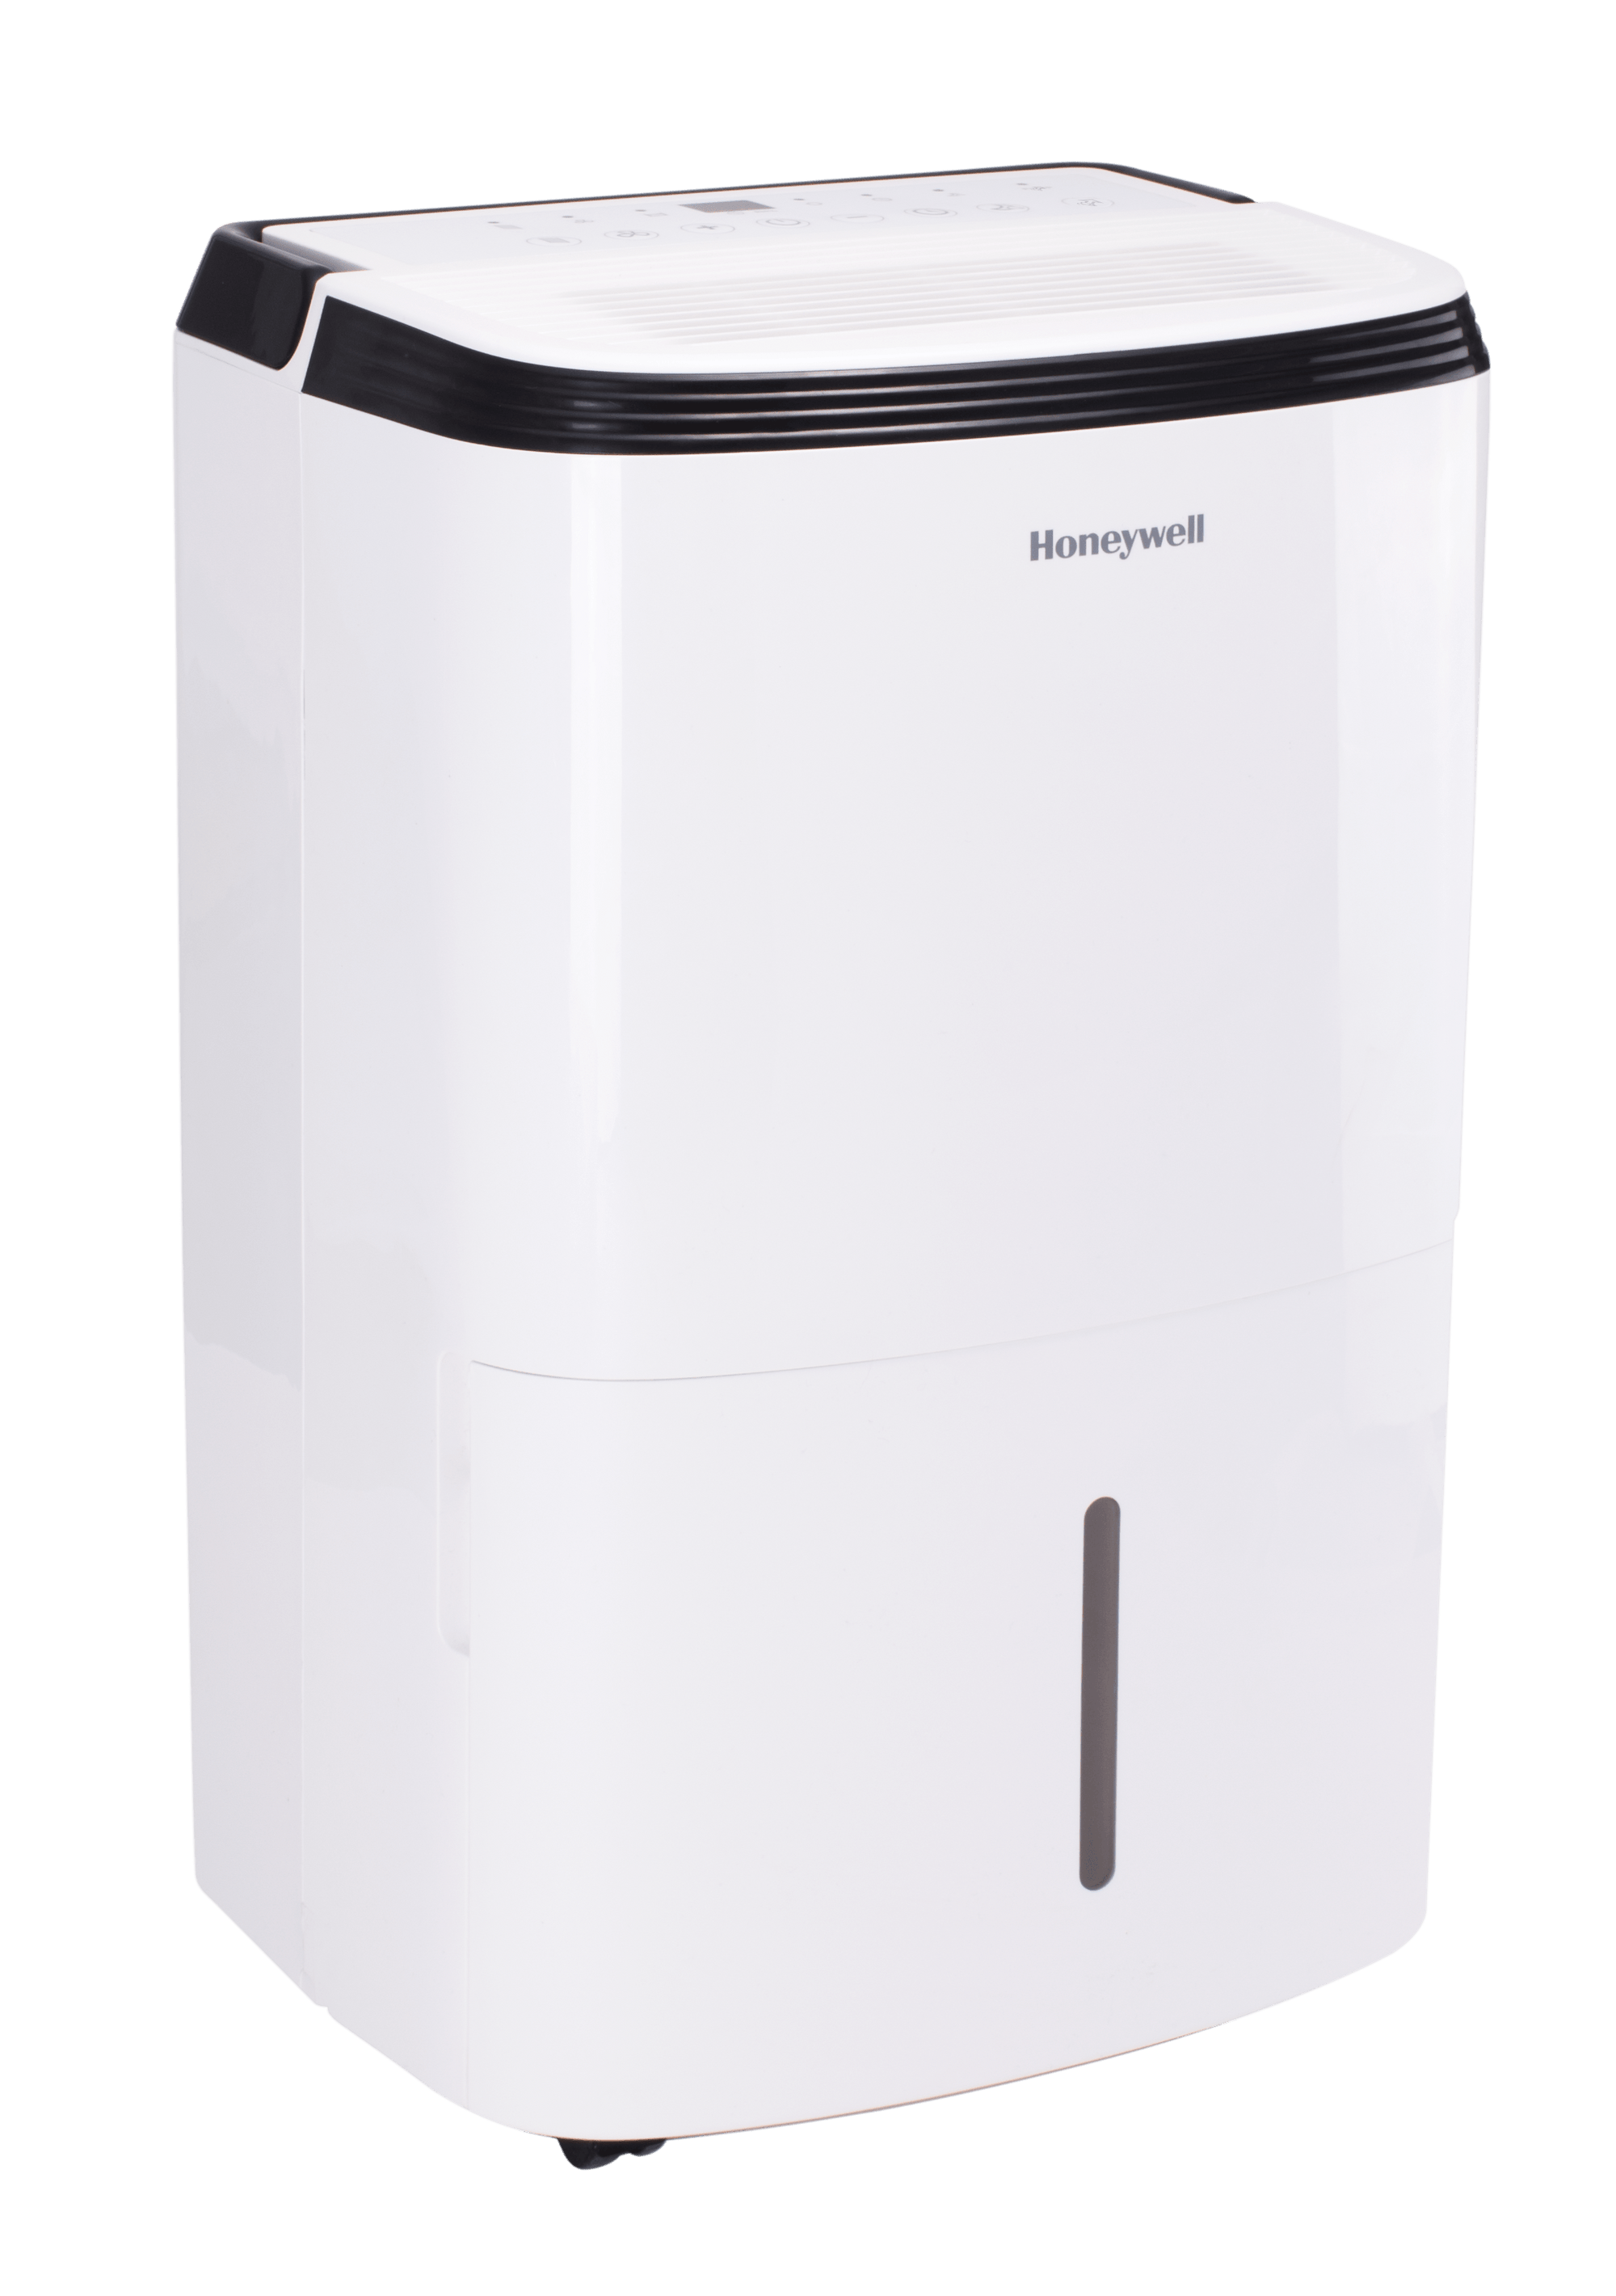 Honeywell TP70PWK Energy Star Qualified Dehumidifier Dehumidifier jmatek